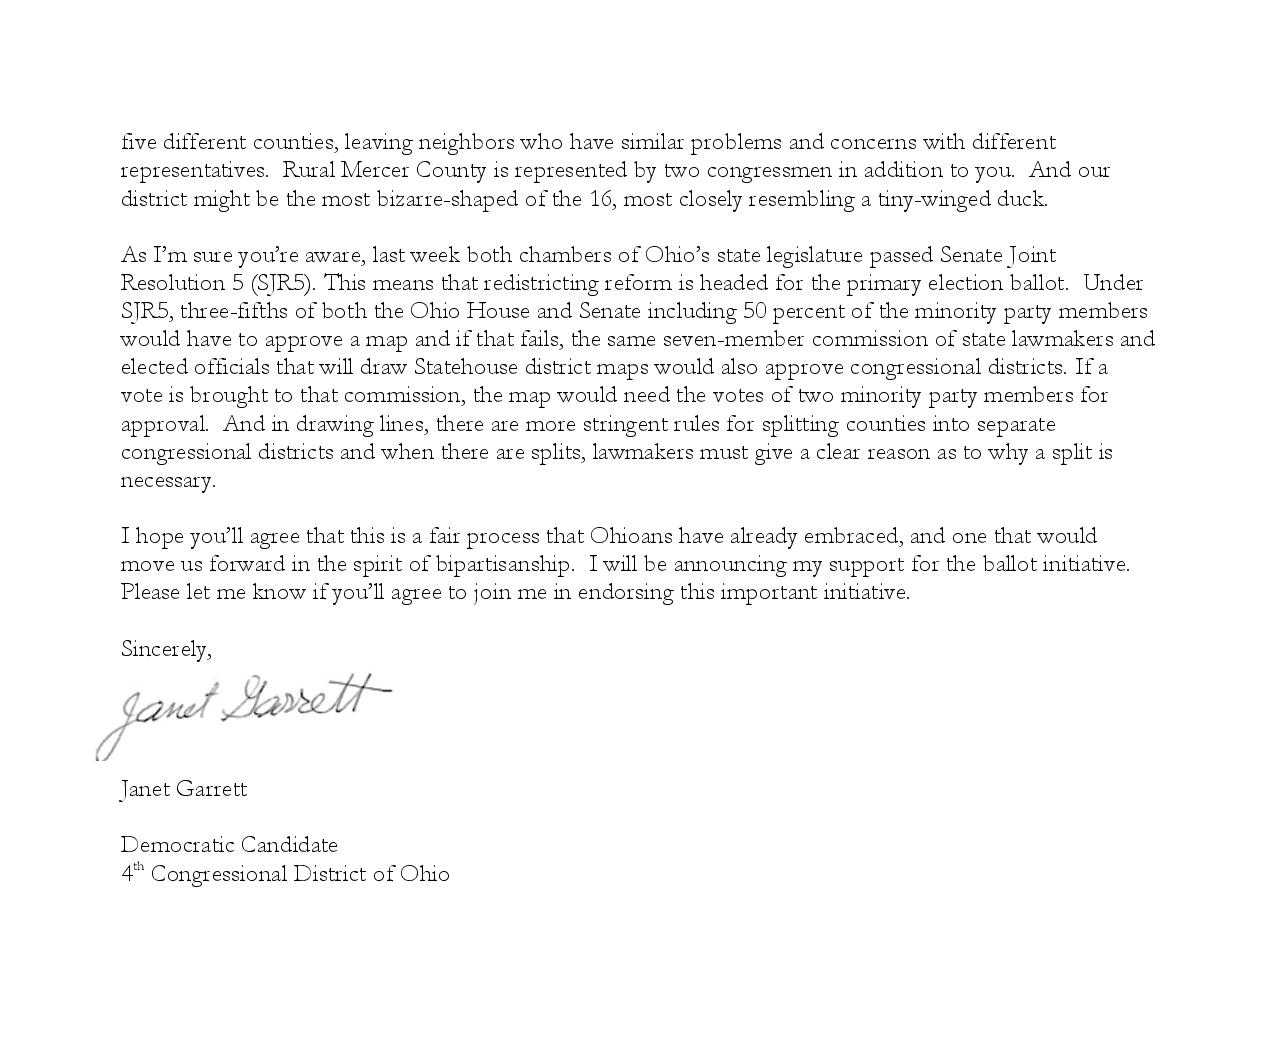 Janet Letter to JJ re Redistricting 2_11_18-page-002.jpg